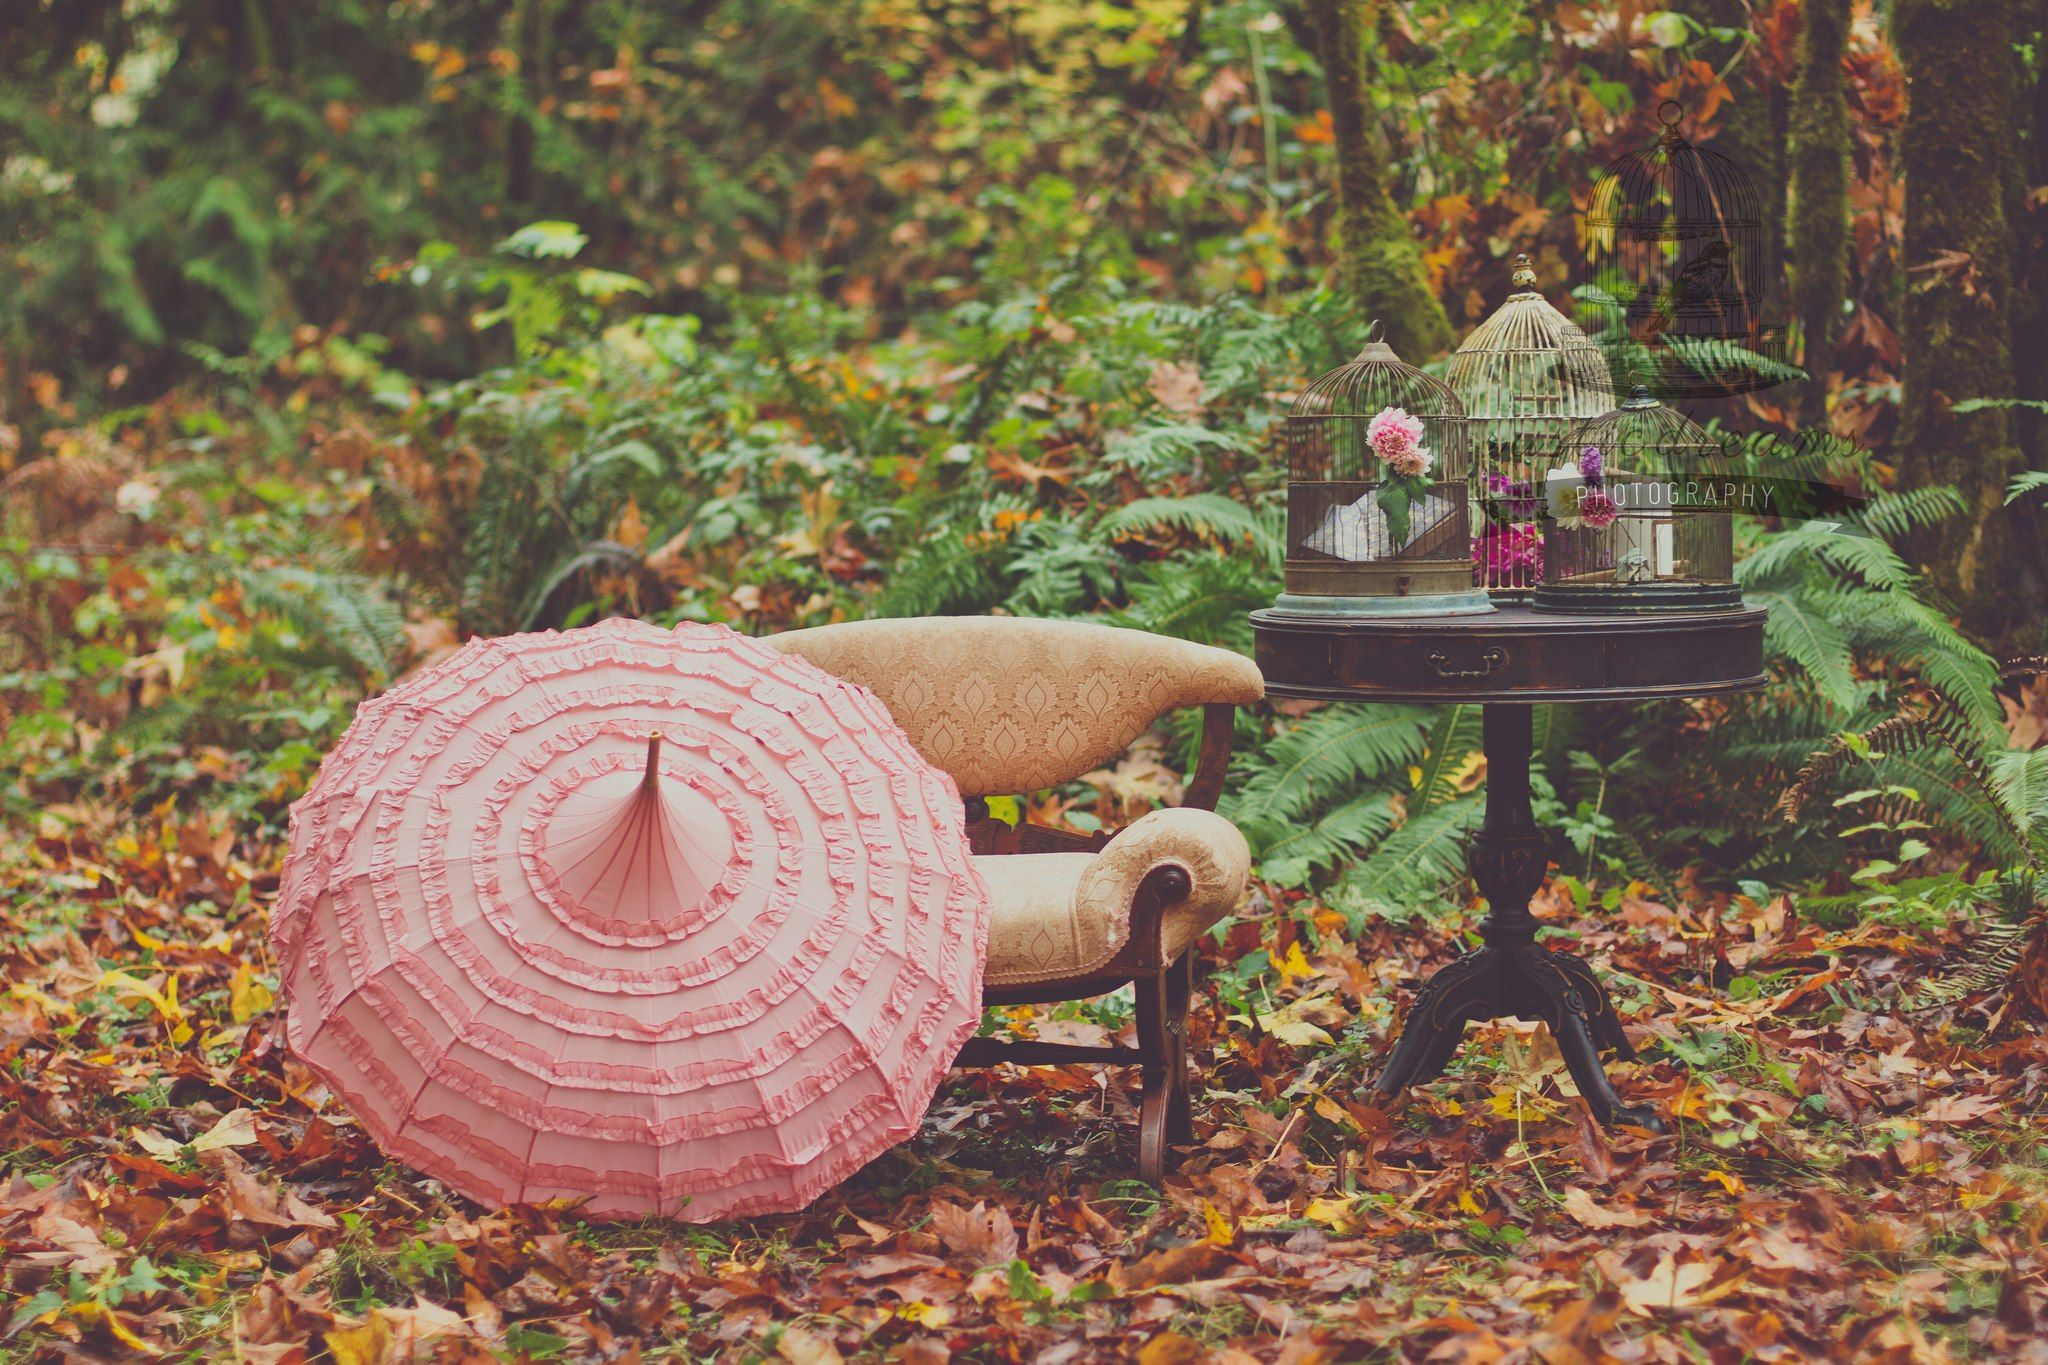 Lovely Events Fall 2012 Stylized Photo Shoot. Photography: Rustic Dreams, Decor Elements: Vintage Ambiance, Umbrella: Bella Umbrella, Stylist: Audra Goetz; Lovely Events.